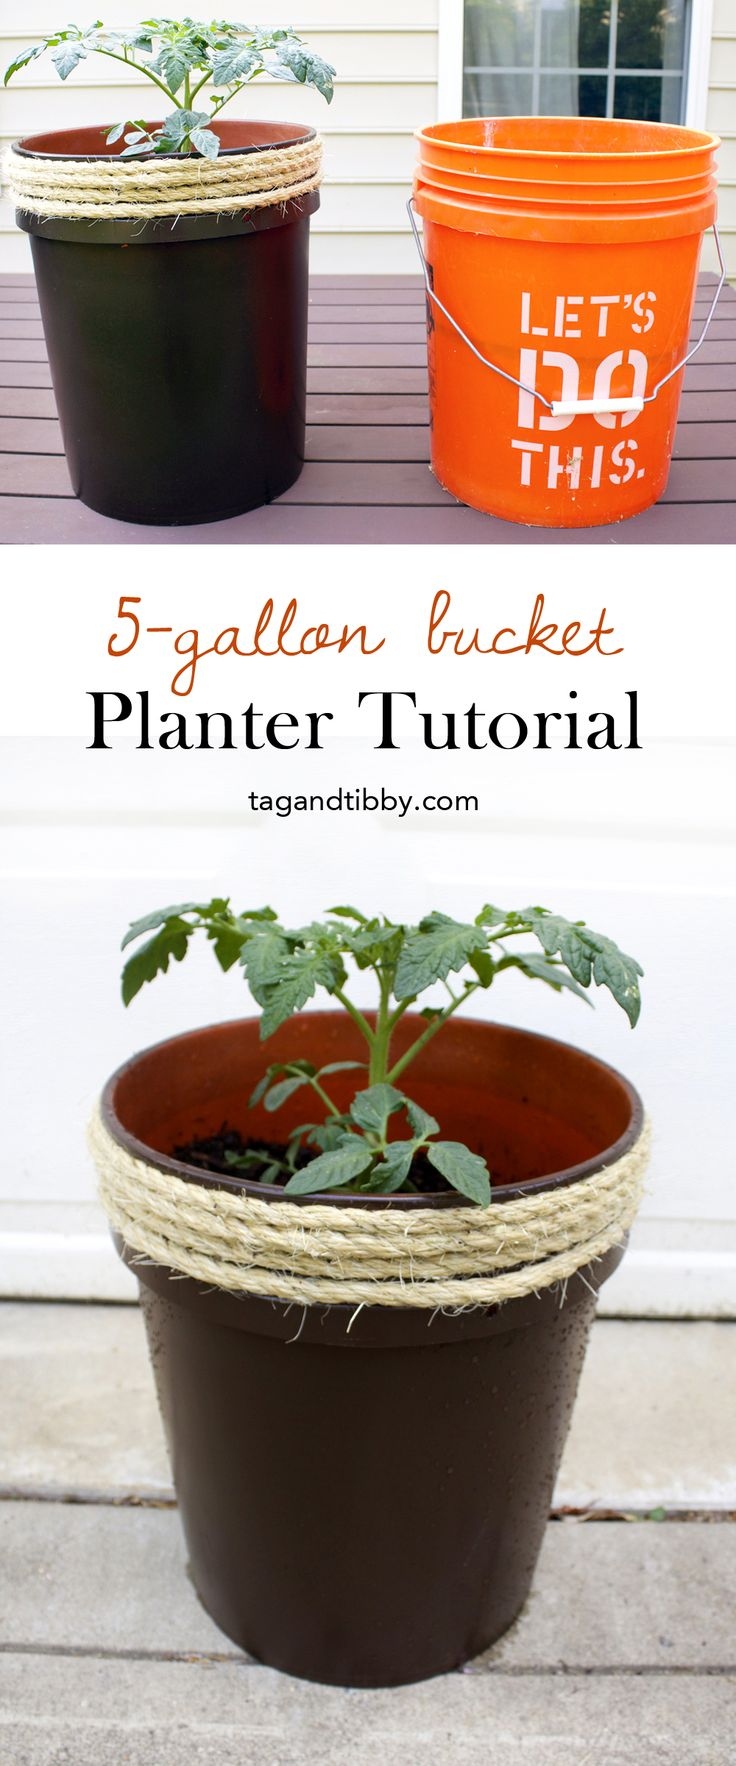 Home Decorating Diy Projects How To Make A Planter From A 5 Gallon